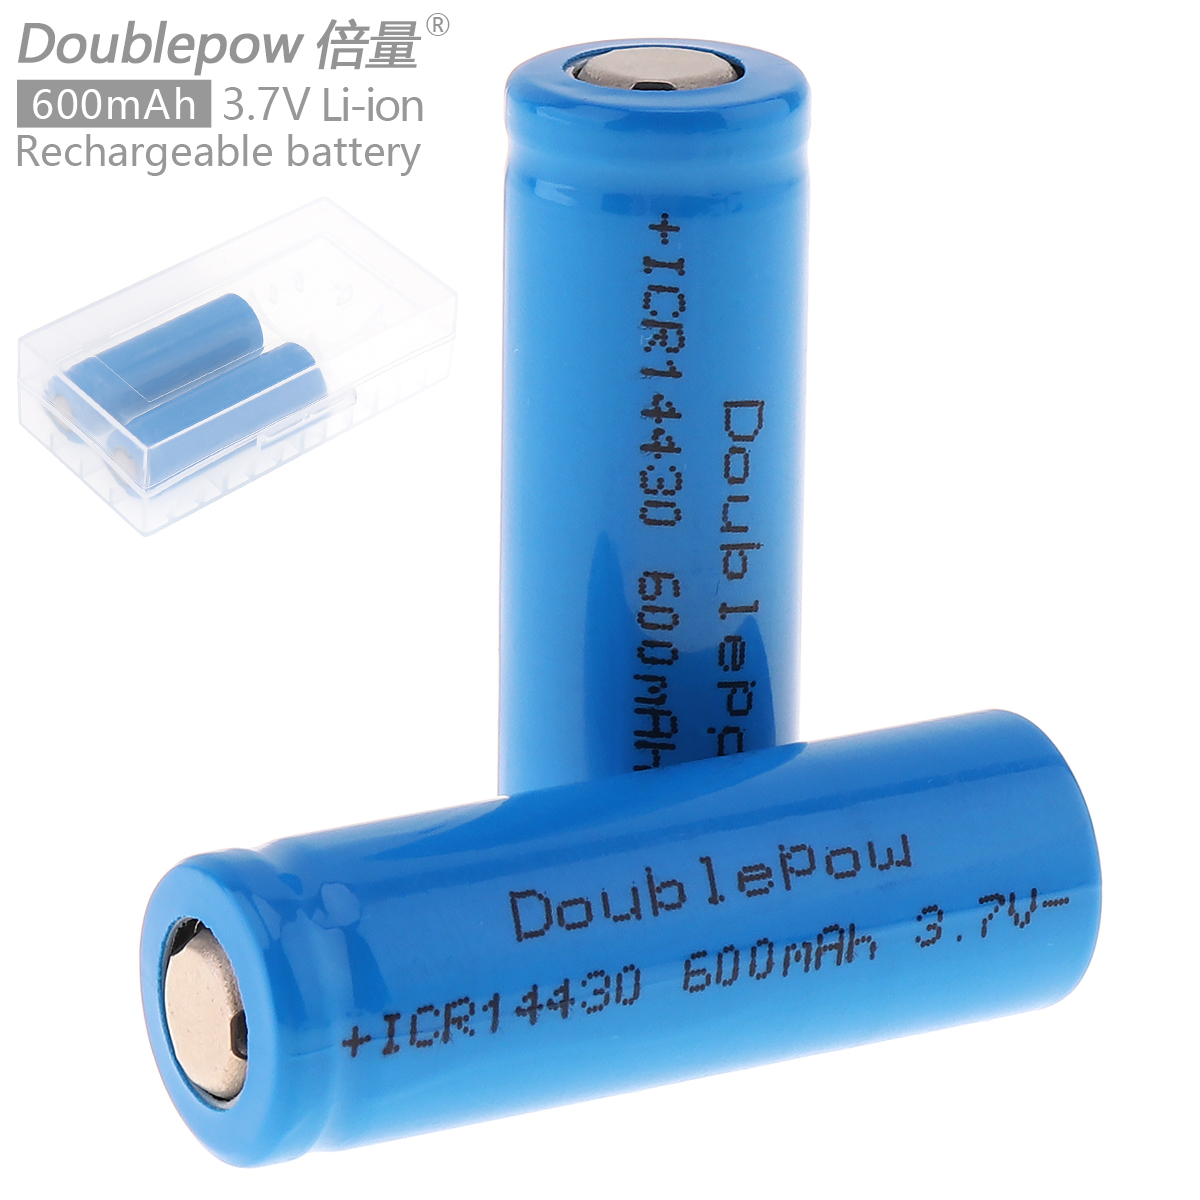 Doublepow 2pcs 14430 <font><b>600mAh</b></font> 3.7V Li-ion Rechargeable <font><b>Battery</b></font> Bateria Baterias with Safety Relief Valve + Portable <font><b>Battery</b></font> Box